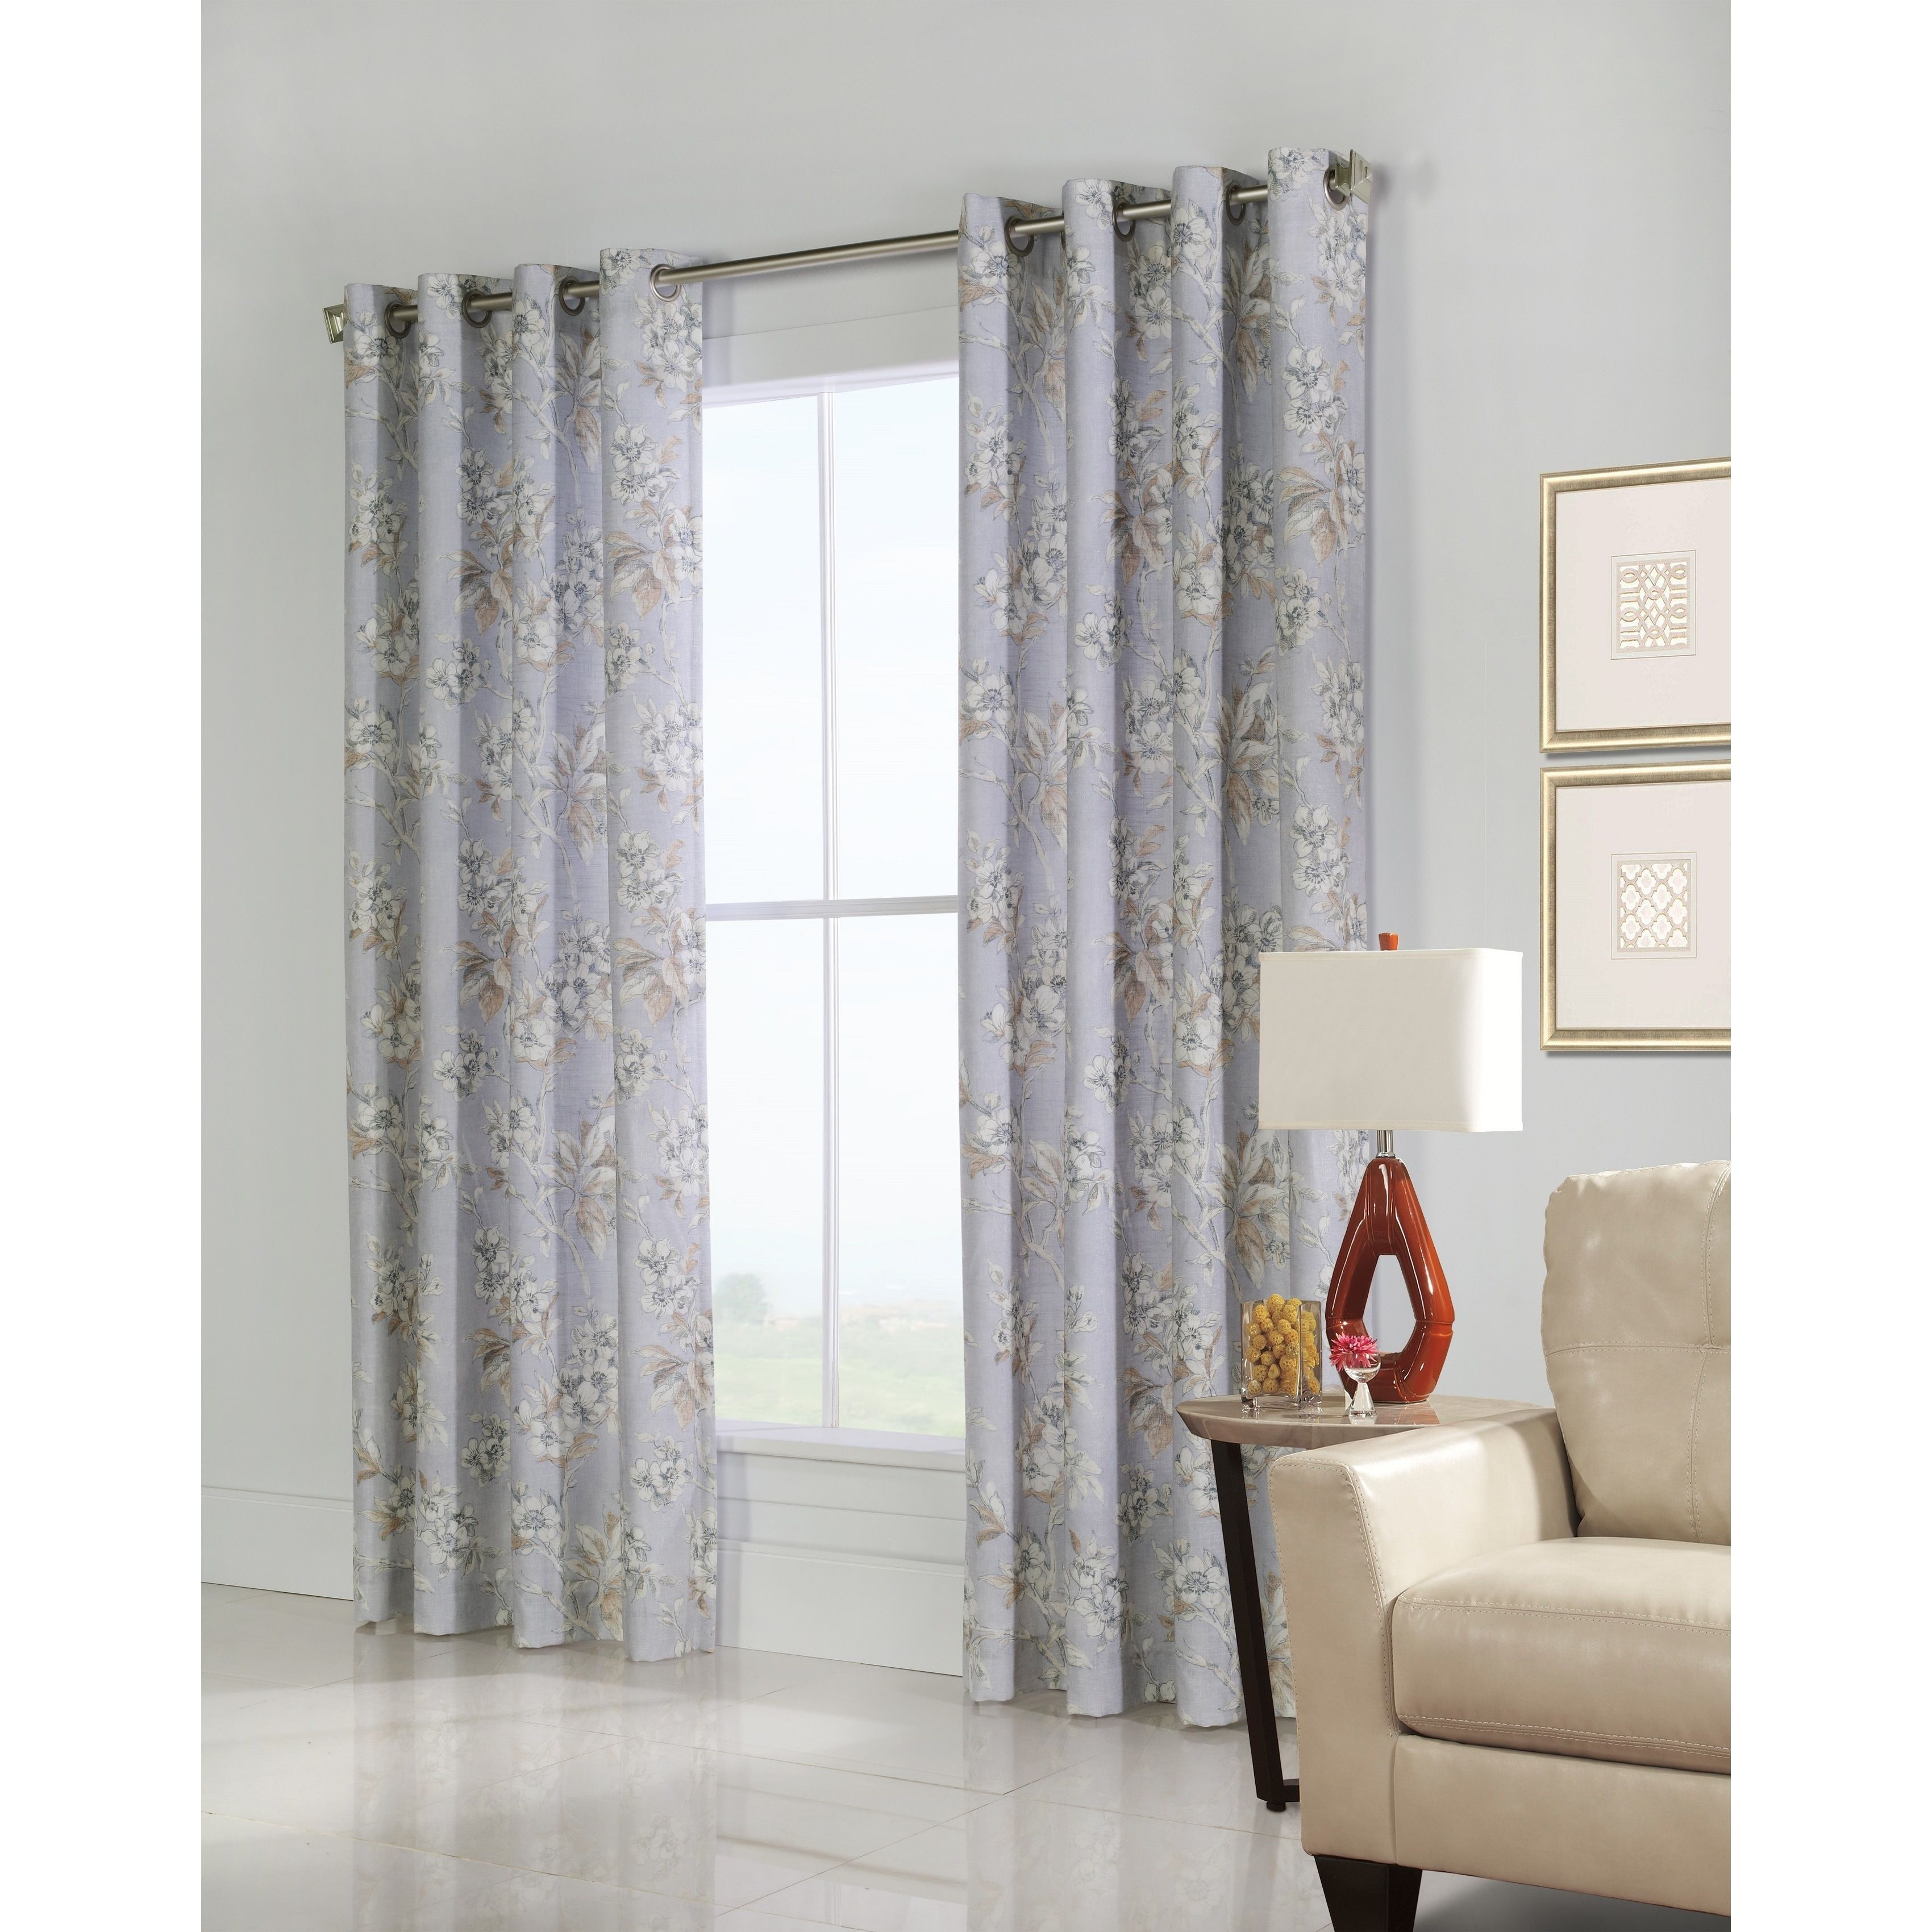 7123ffd31bd7458ba78869a91713a174 - Better Homes And Gardens Thermal Curtains